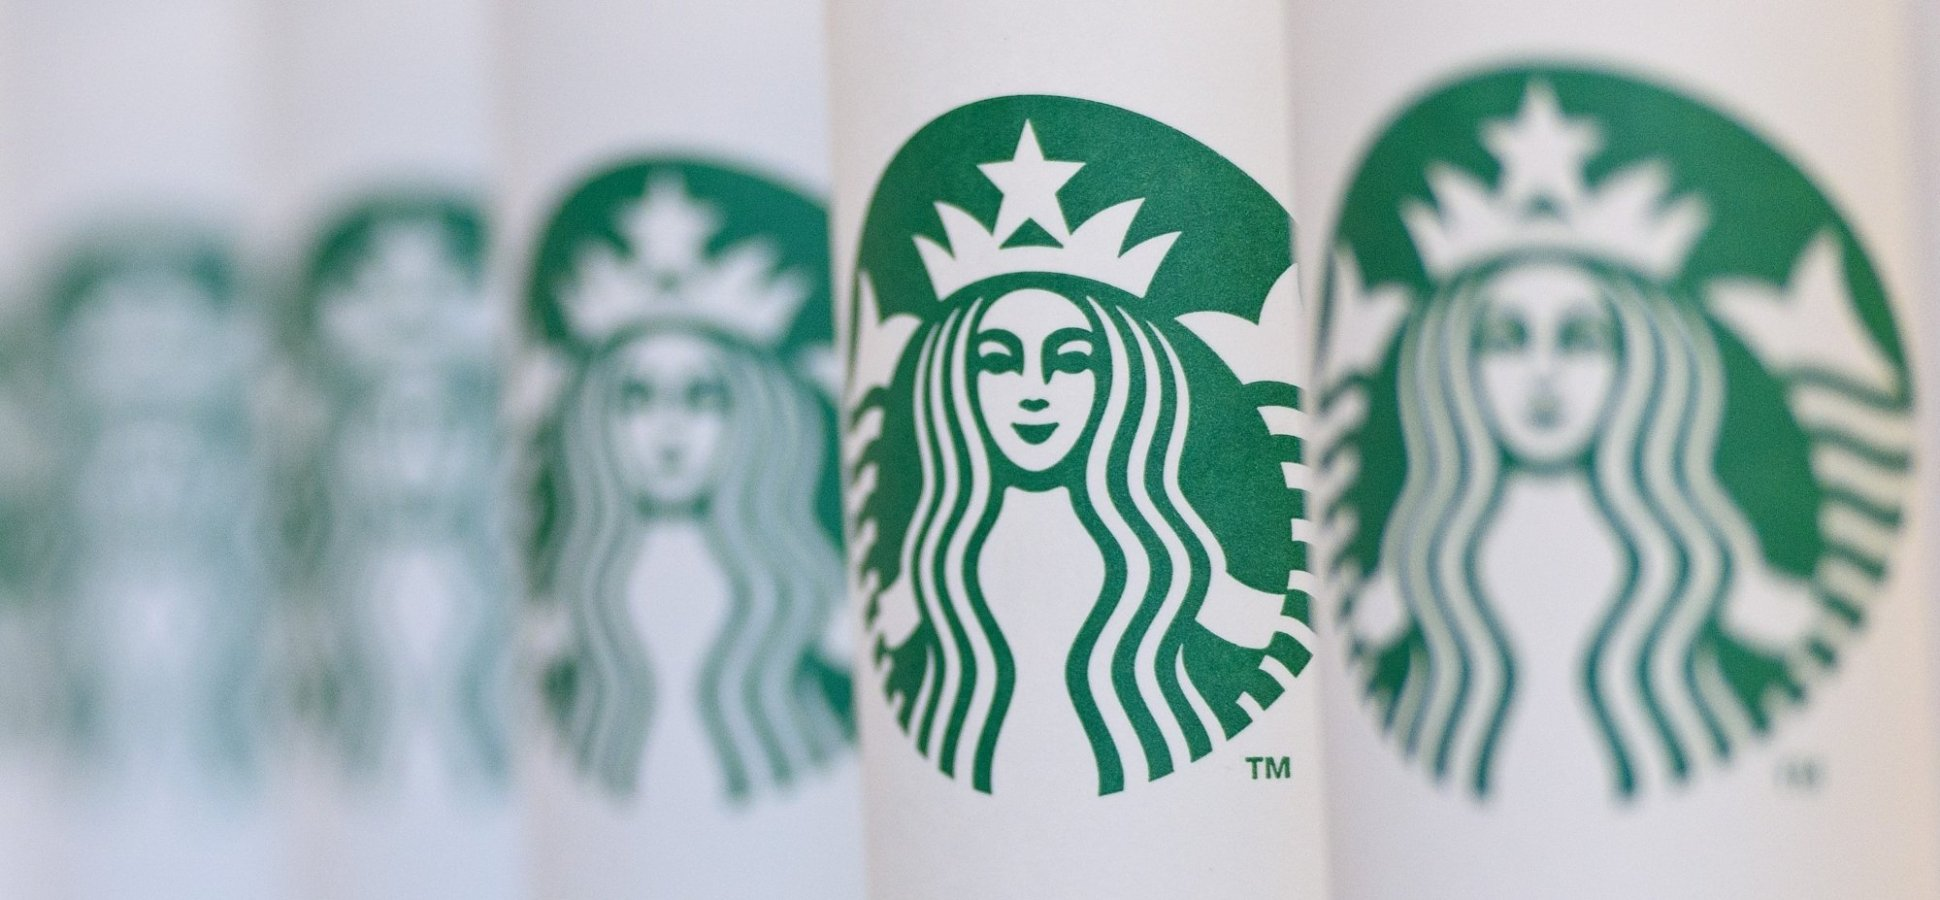 Starbucks Just Announced a Simple New Benefit for 180,000 Employees, and It's Totally Brilliant